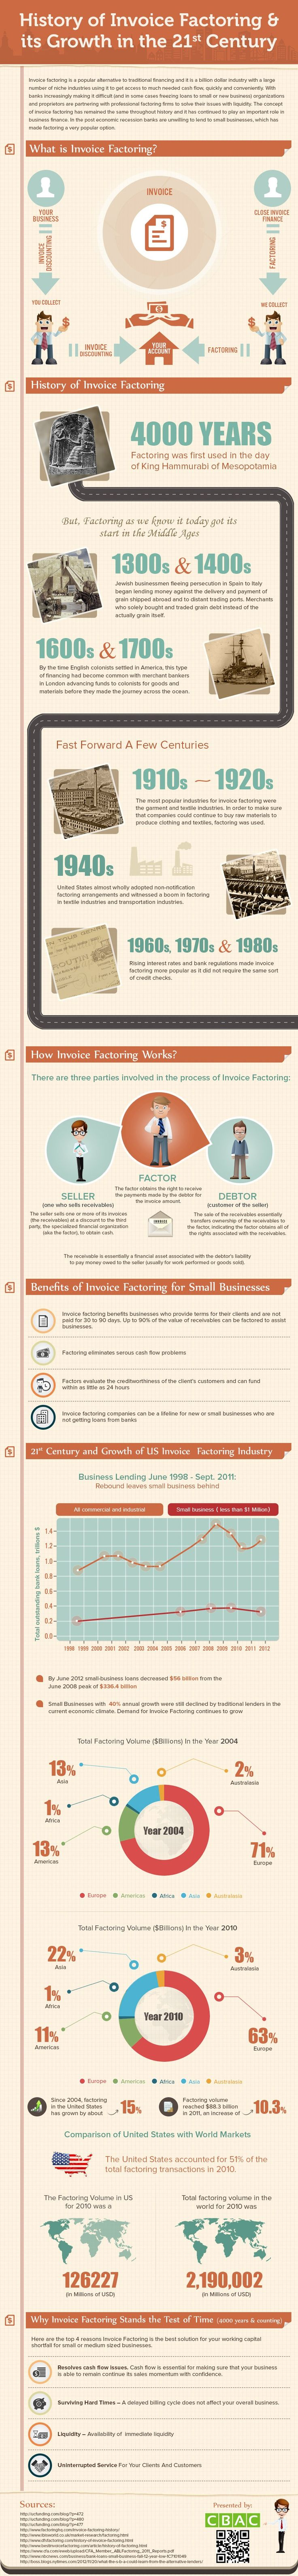 How To Send Invoice  Best Business Infographics Images On Pinterest  Business  Blank Invoices Printable Free Word with Proforma Invoice Word Word Invoice Factoring And Its Growth In The St Century Infographic Invoice Law Pdf